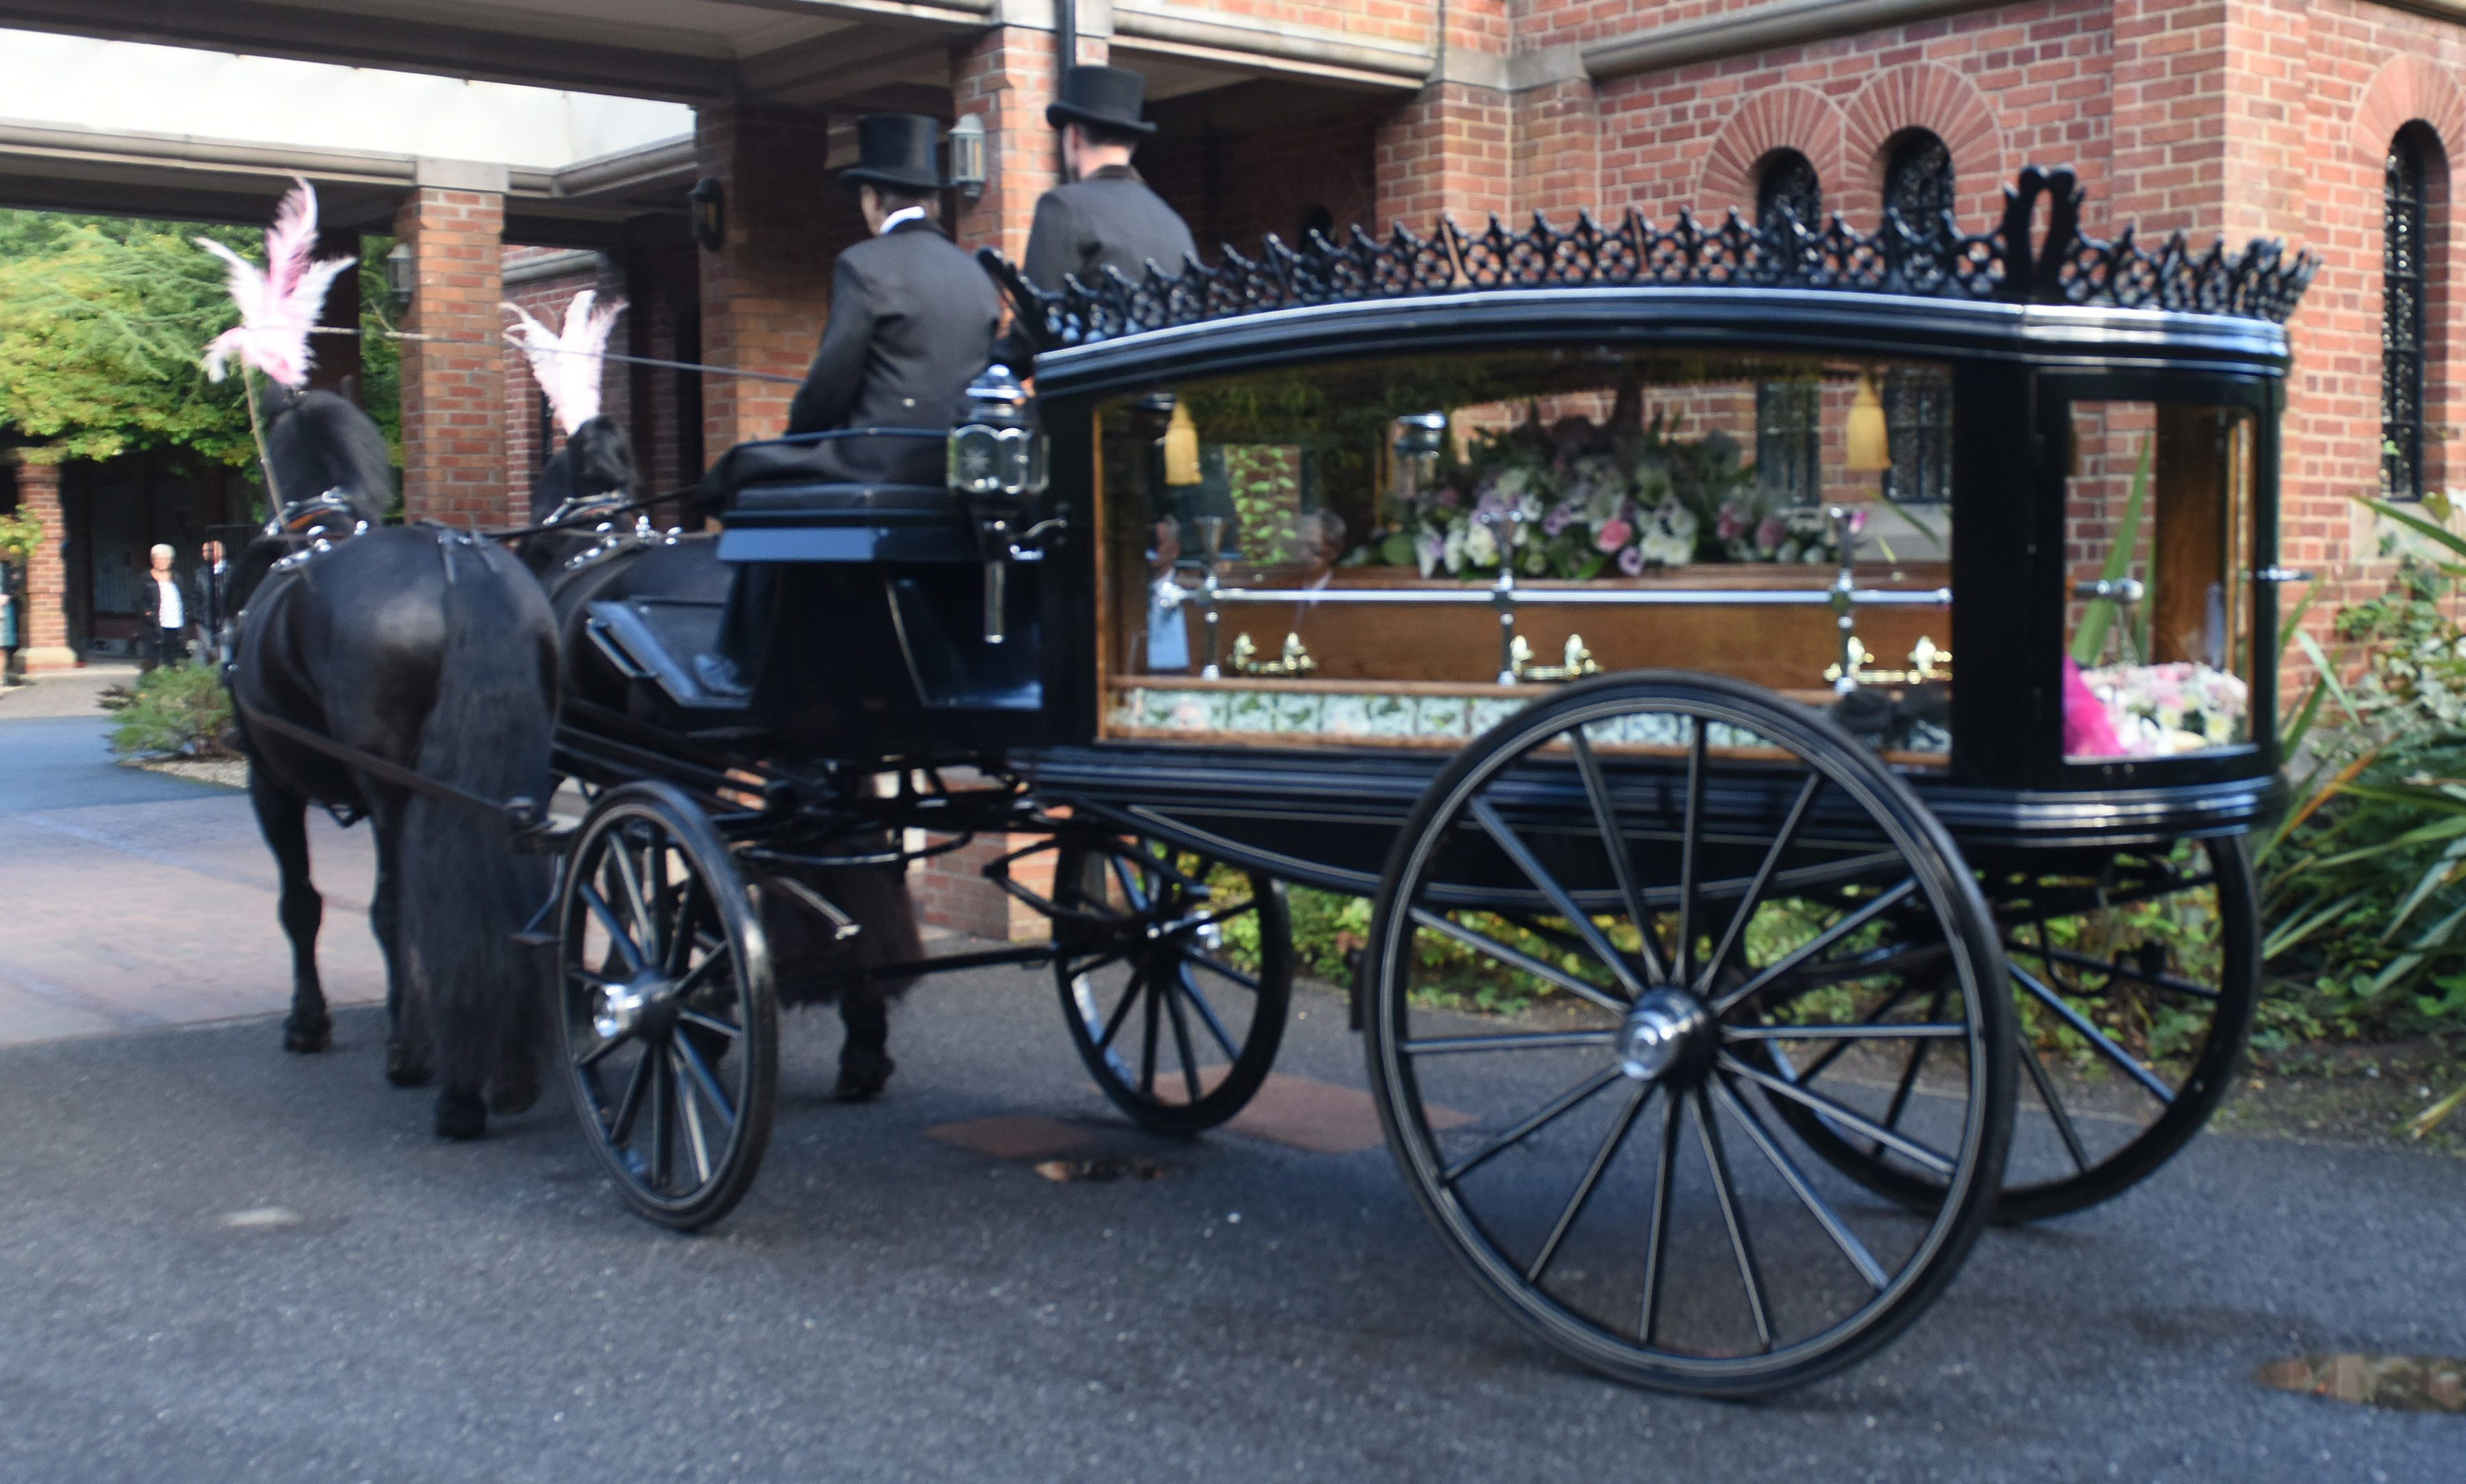 The horse-drawn hearse arrives at Dundee Crematorium.